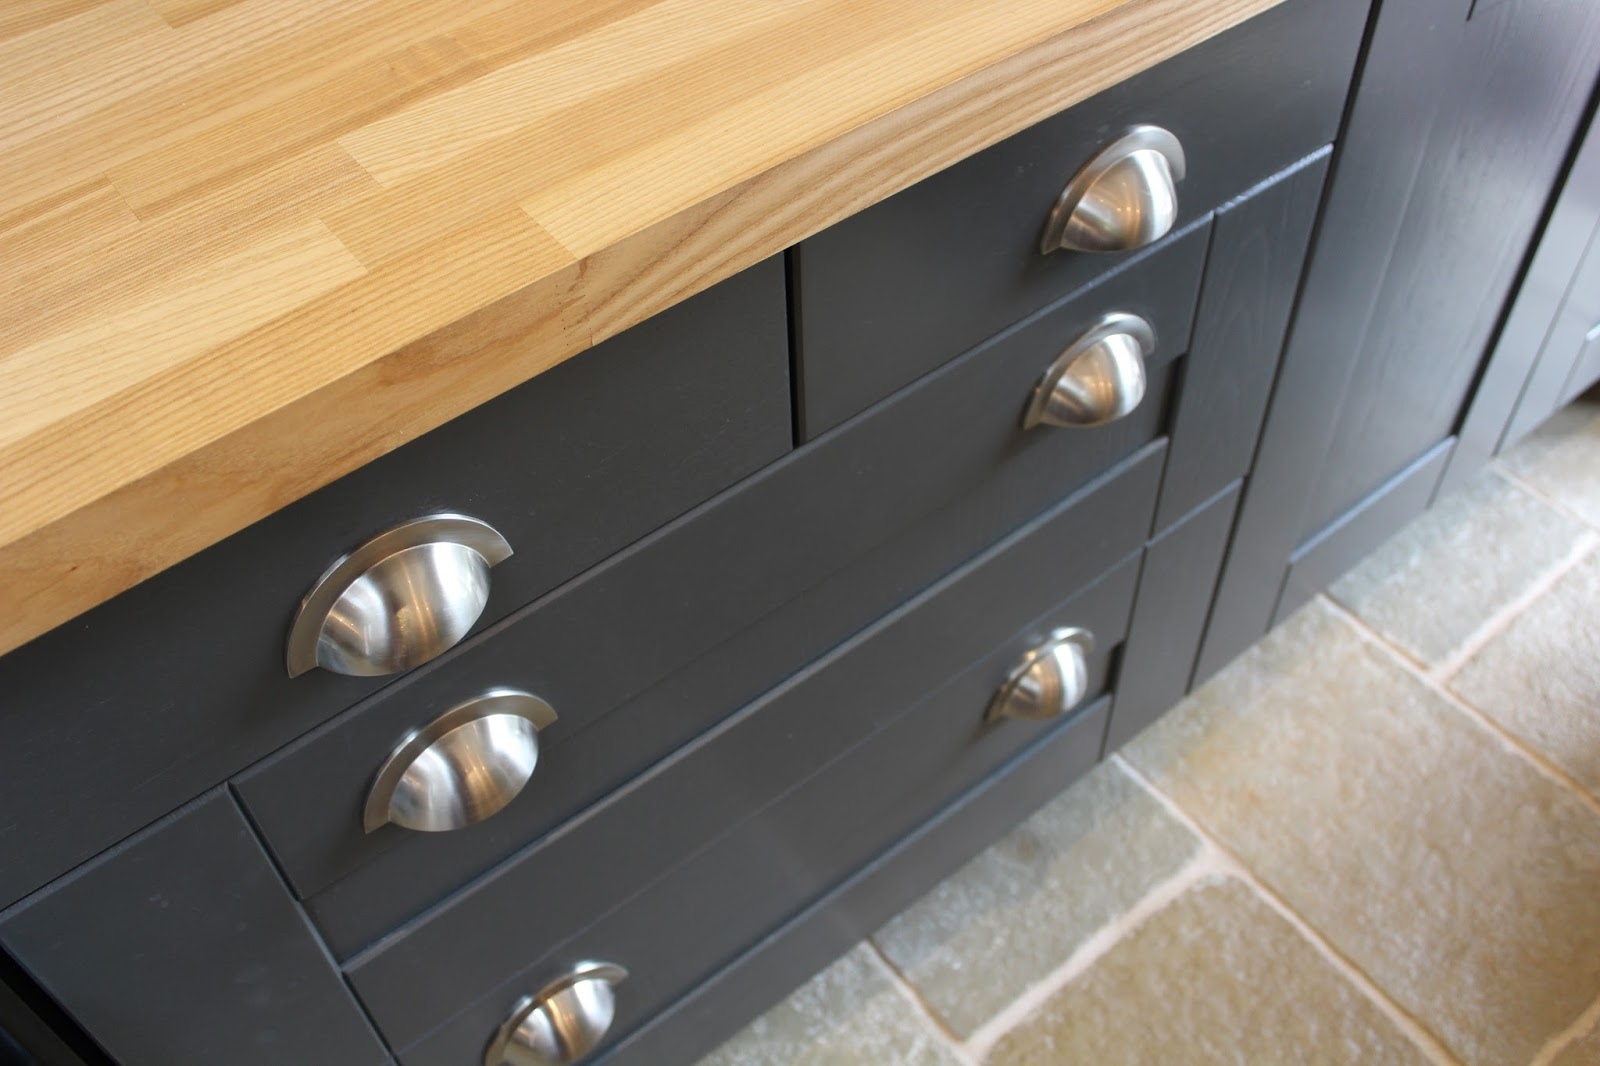 Kitchen Handles Kezzabeth Co Uk Uk Home Renovation Interiors And Diy Blog